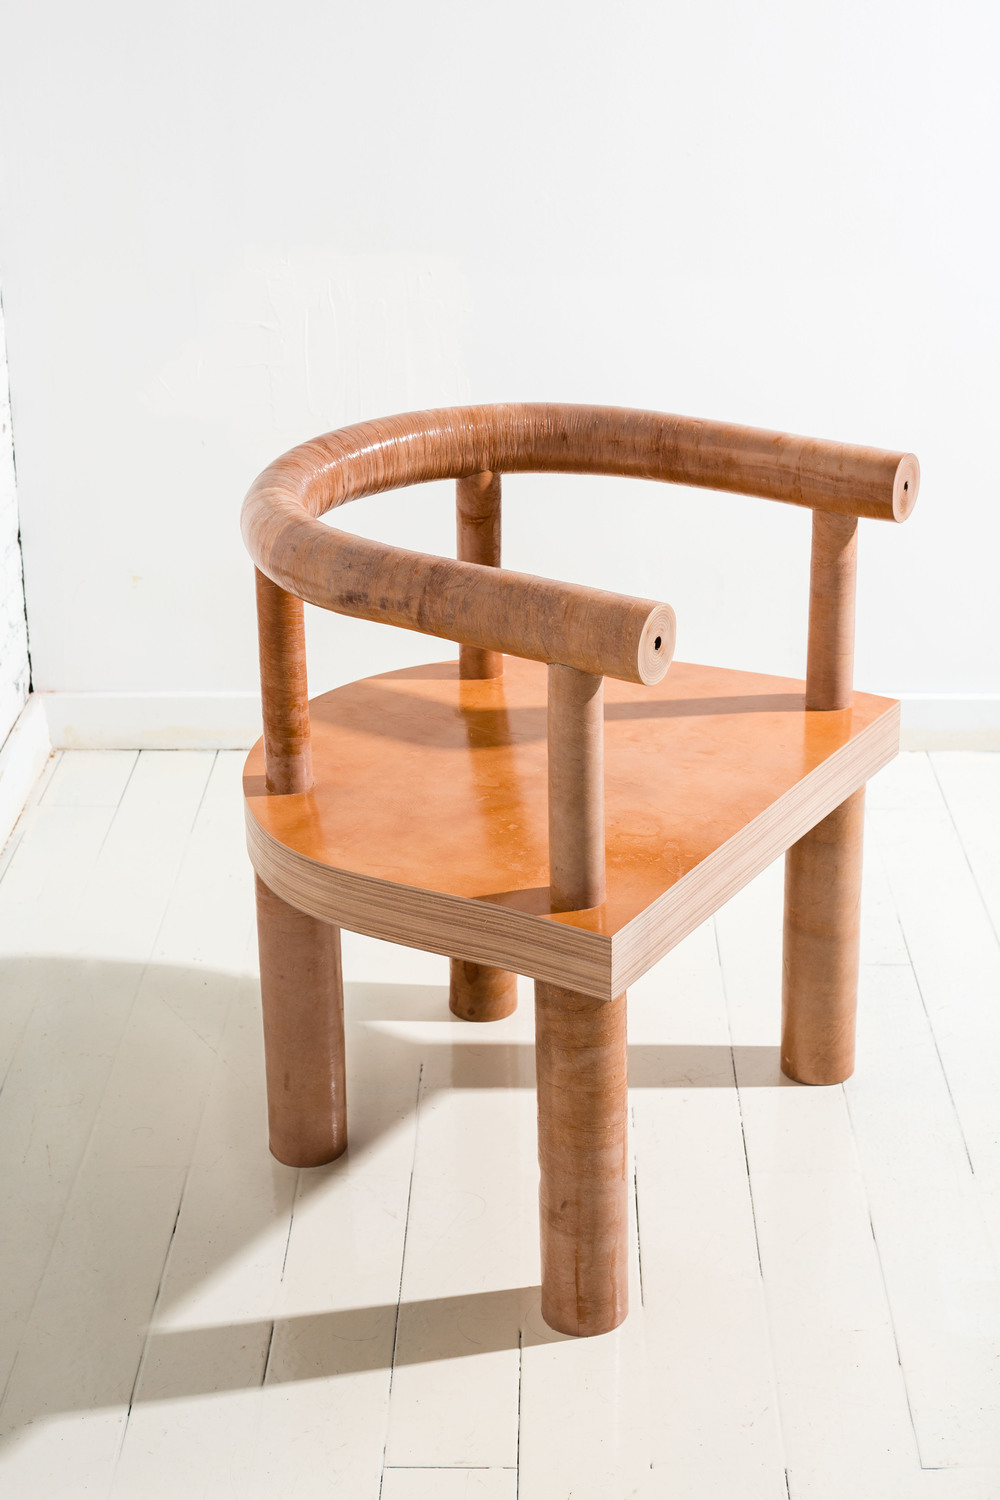 The Stacked Leather Chair, from 'Qualities of Material' by Fort Standard